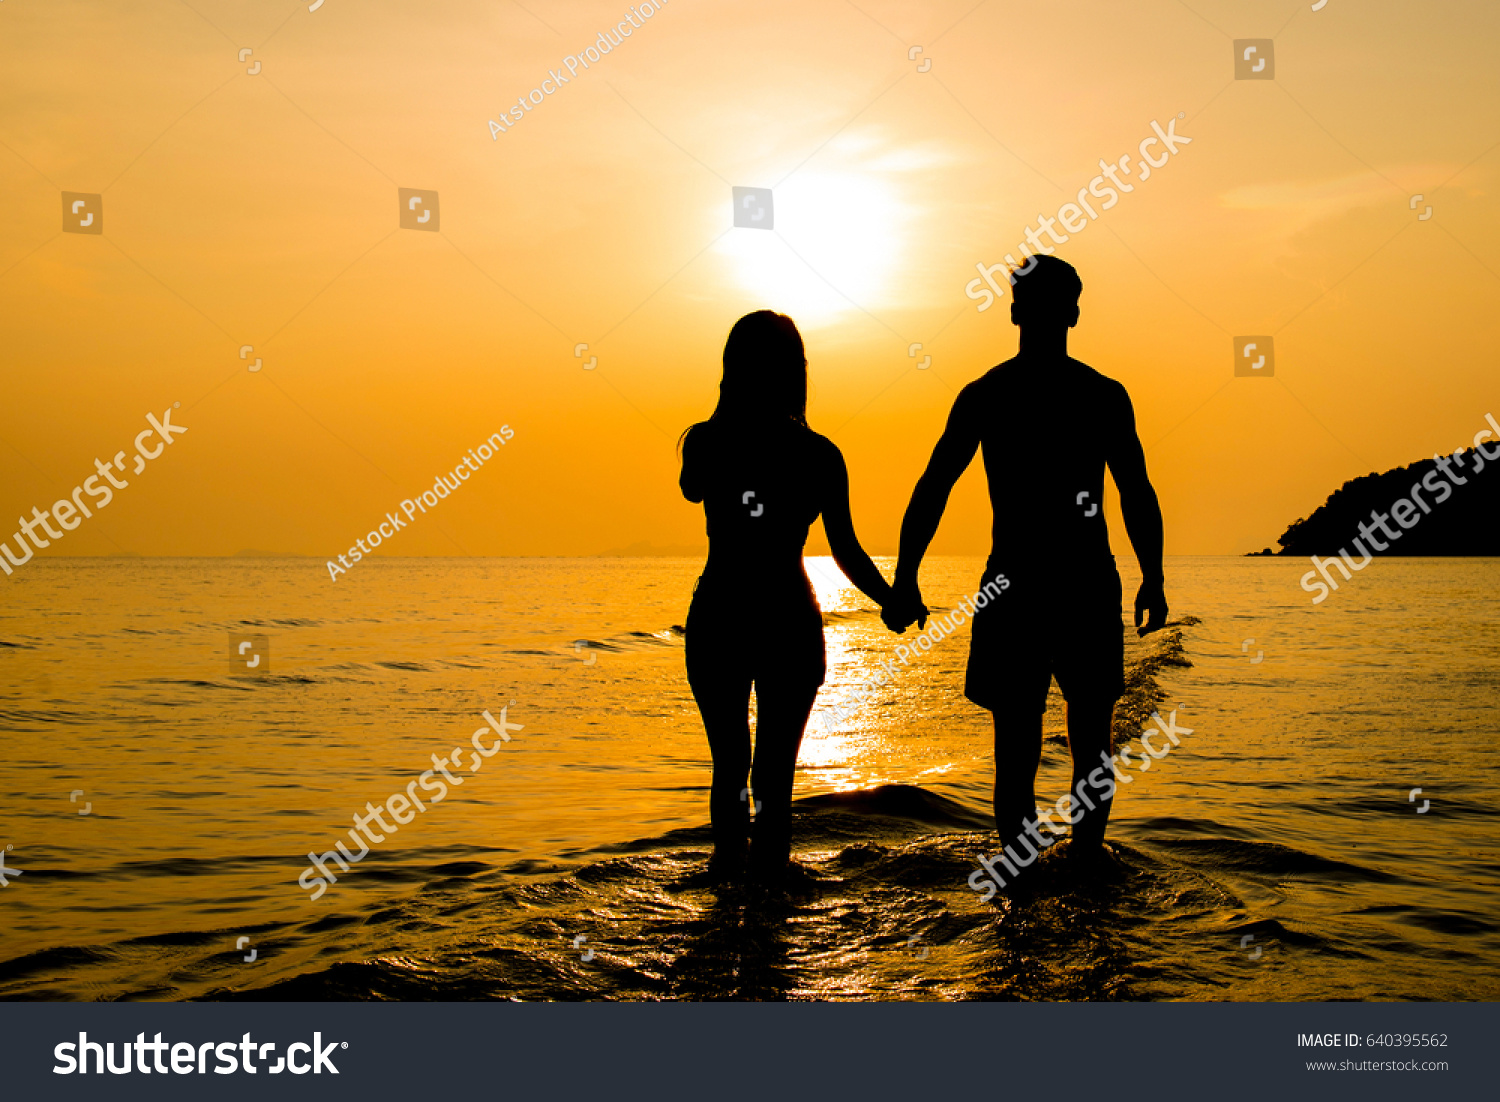 Silhouette Couple Holding Hands Beach Sunset Stock Photo 640395562 ... for Couple Holding Hands Silhouette Sunset  104xkb